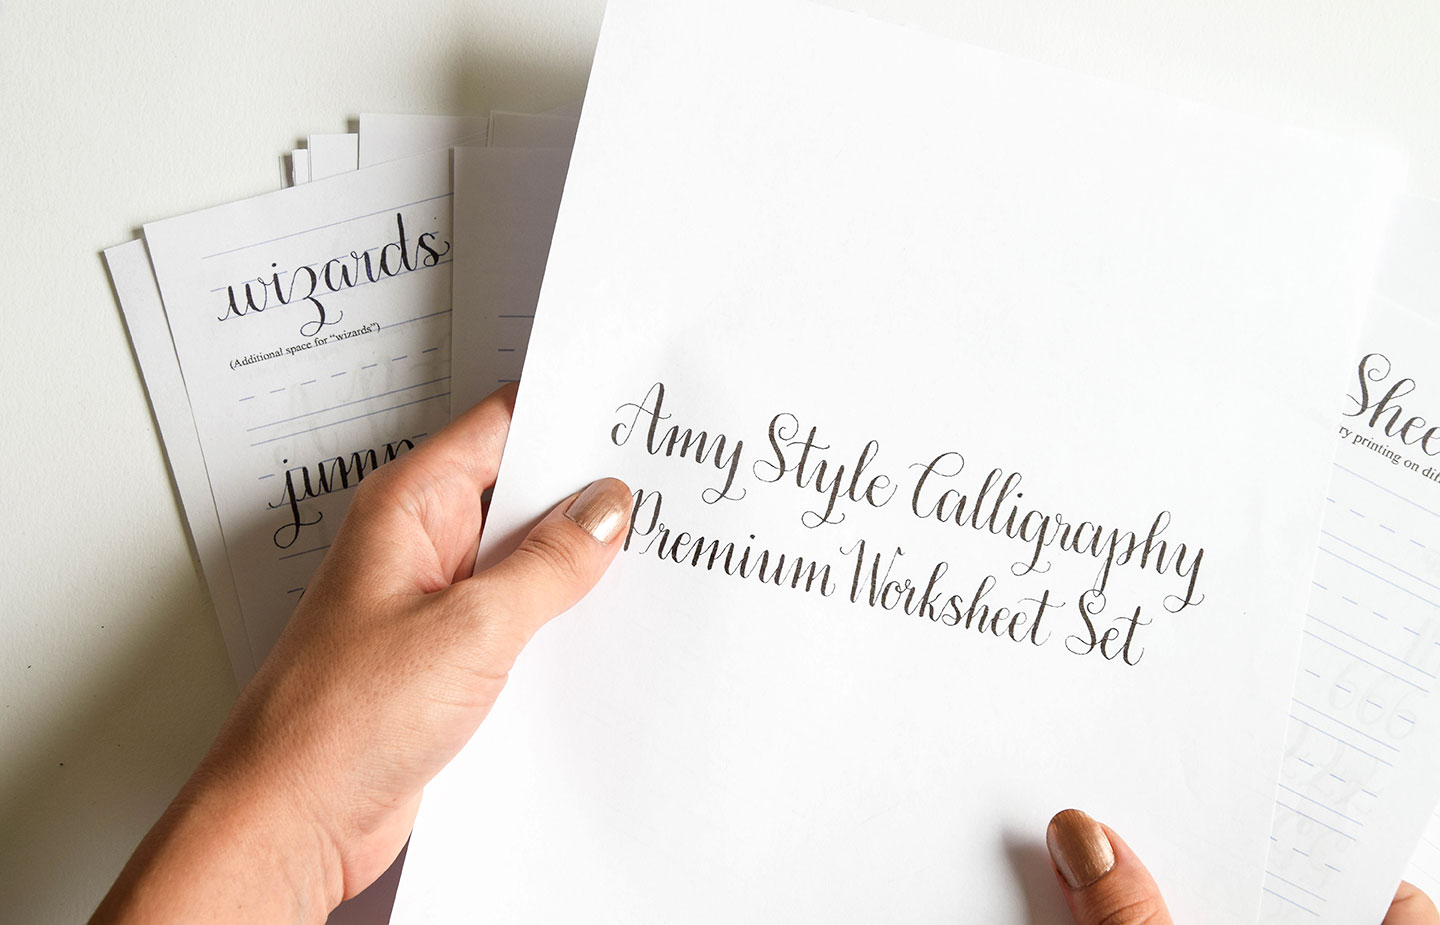 Introducing The Amy Style Learn Calligraphy For A Latte